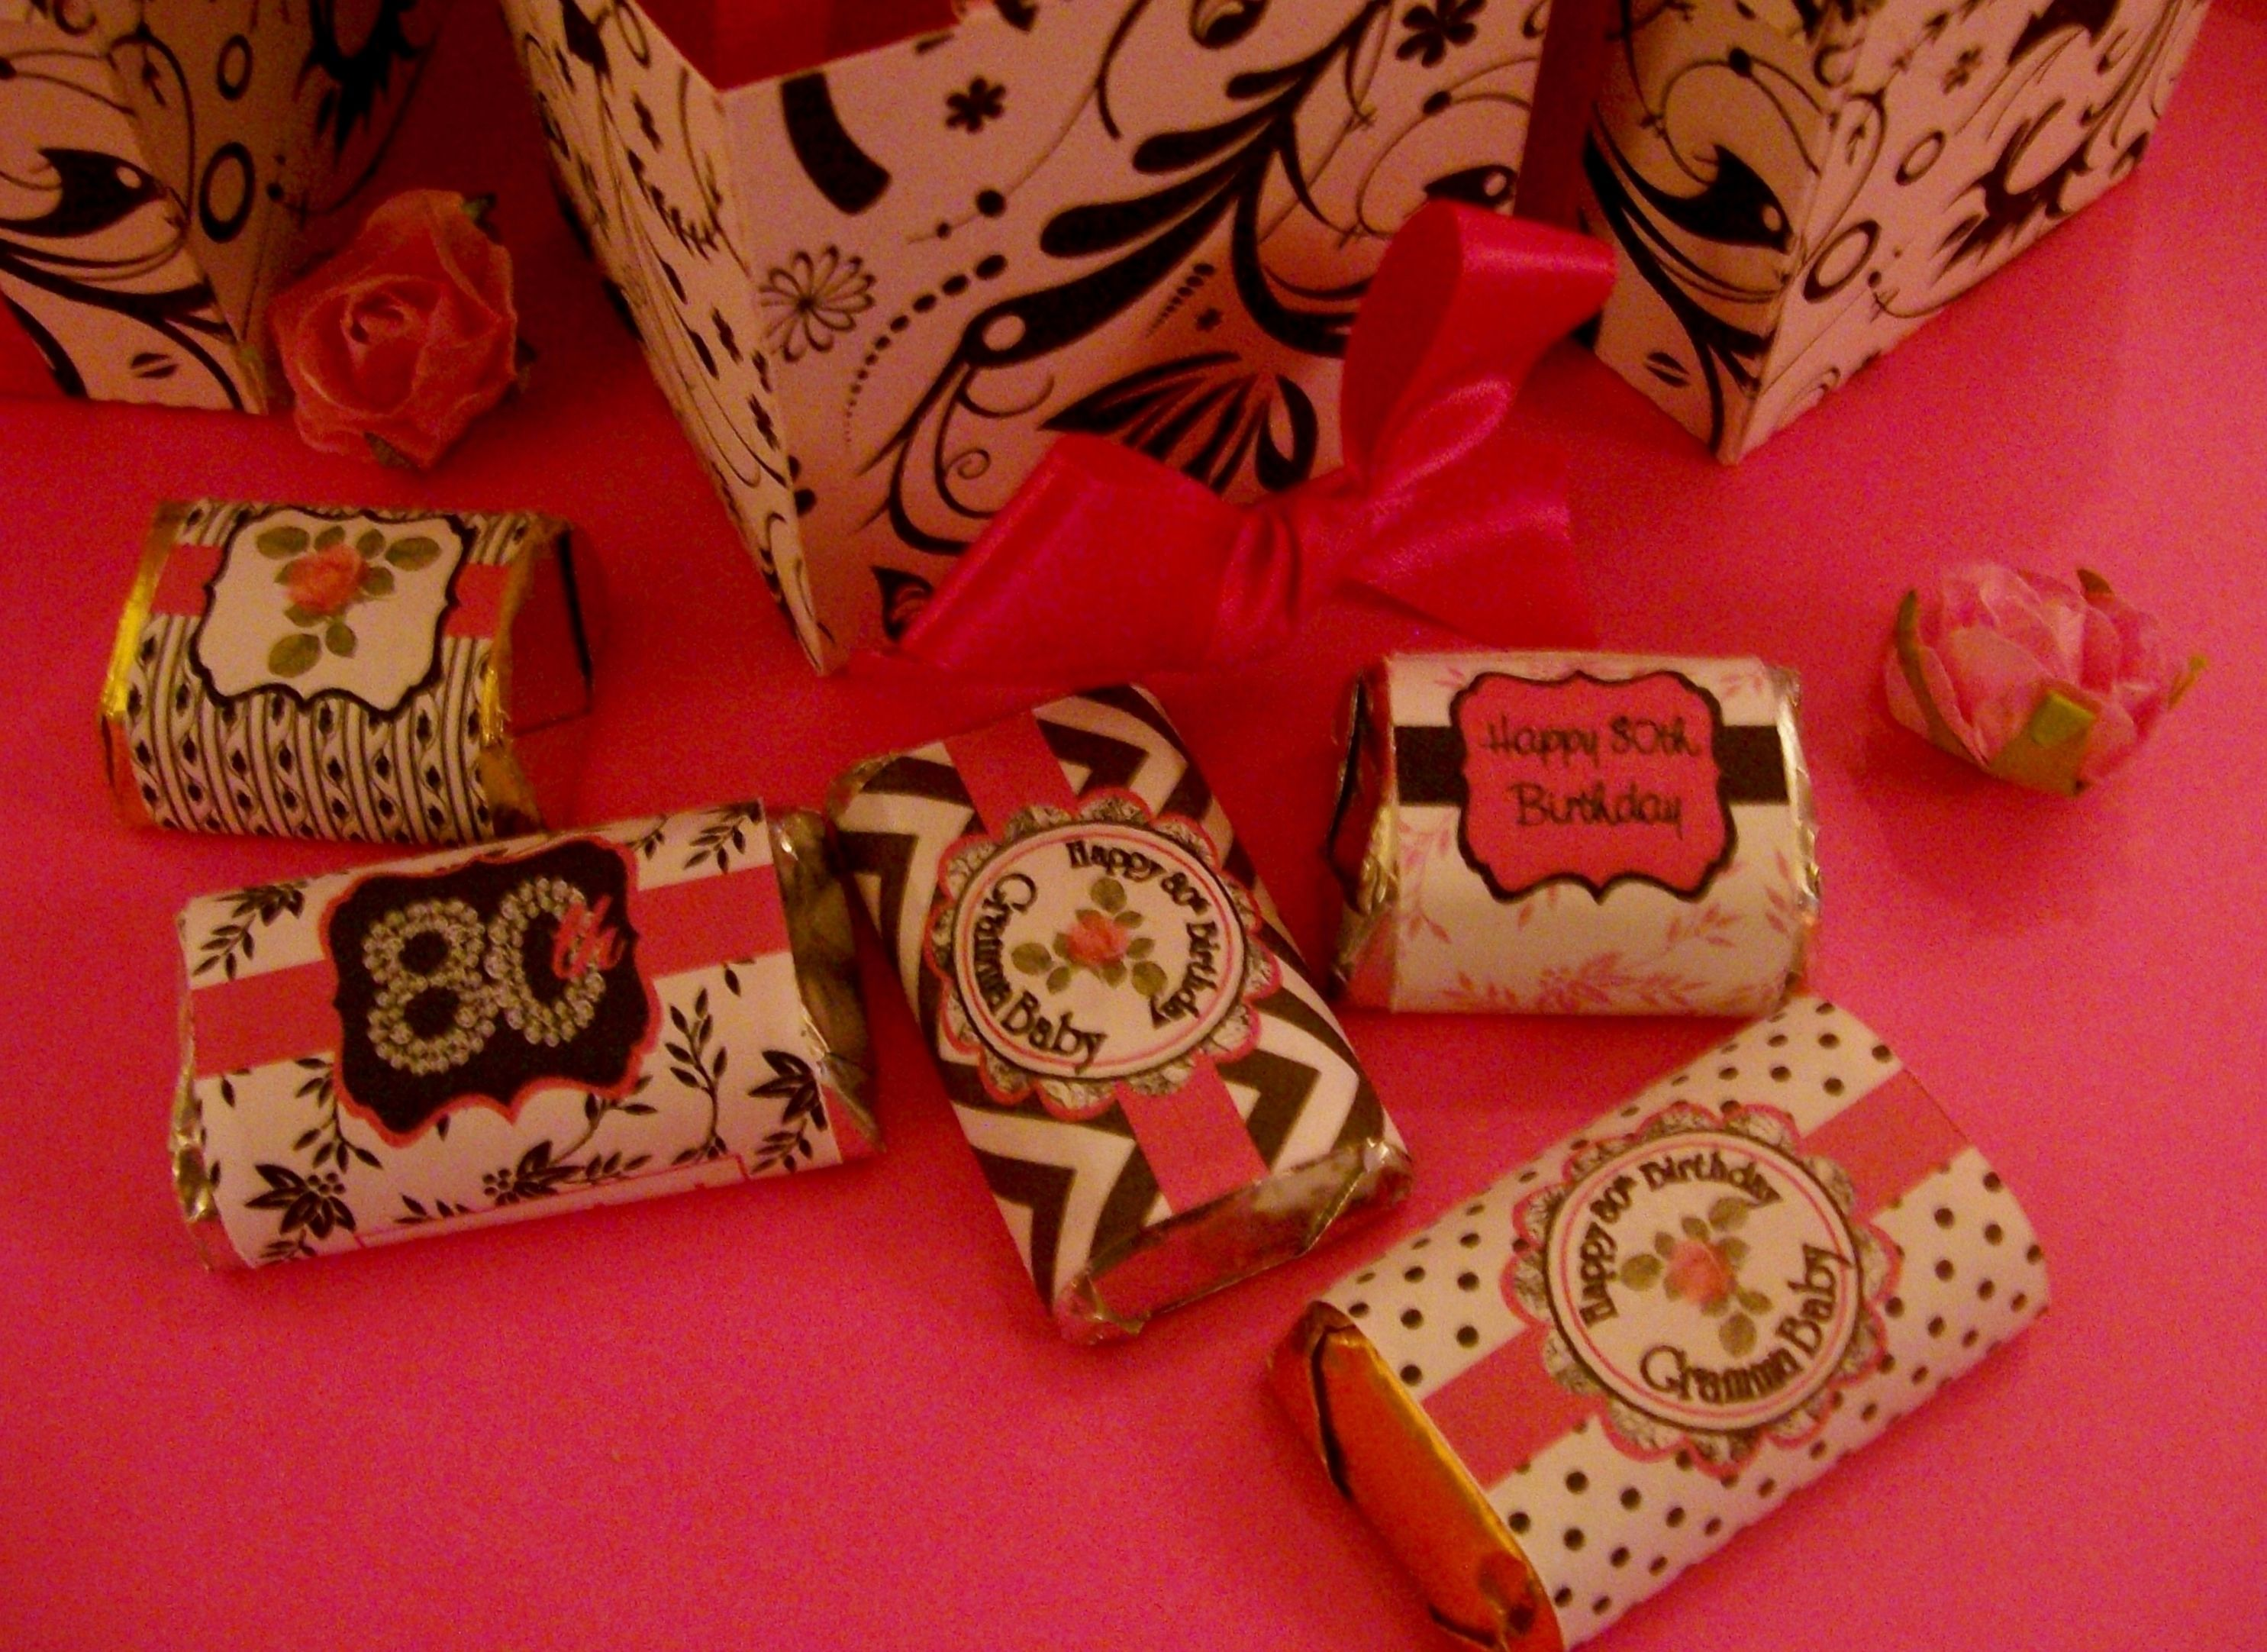 Hershey S Orted Chocolates Wred In Coordinating Printed Party Labels 80th Birthday Theme